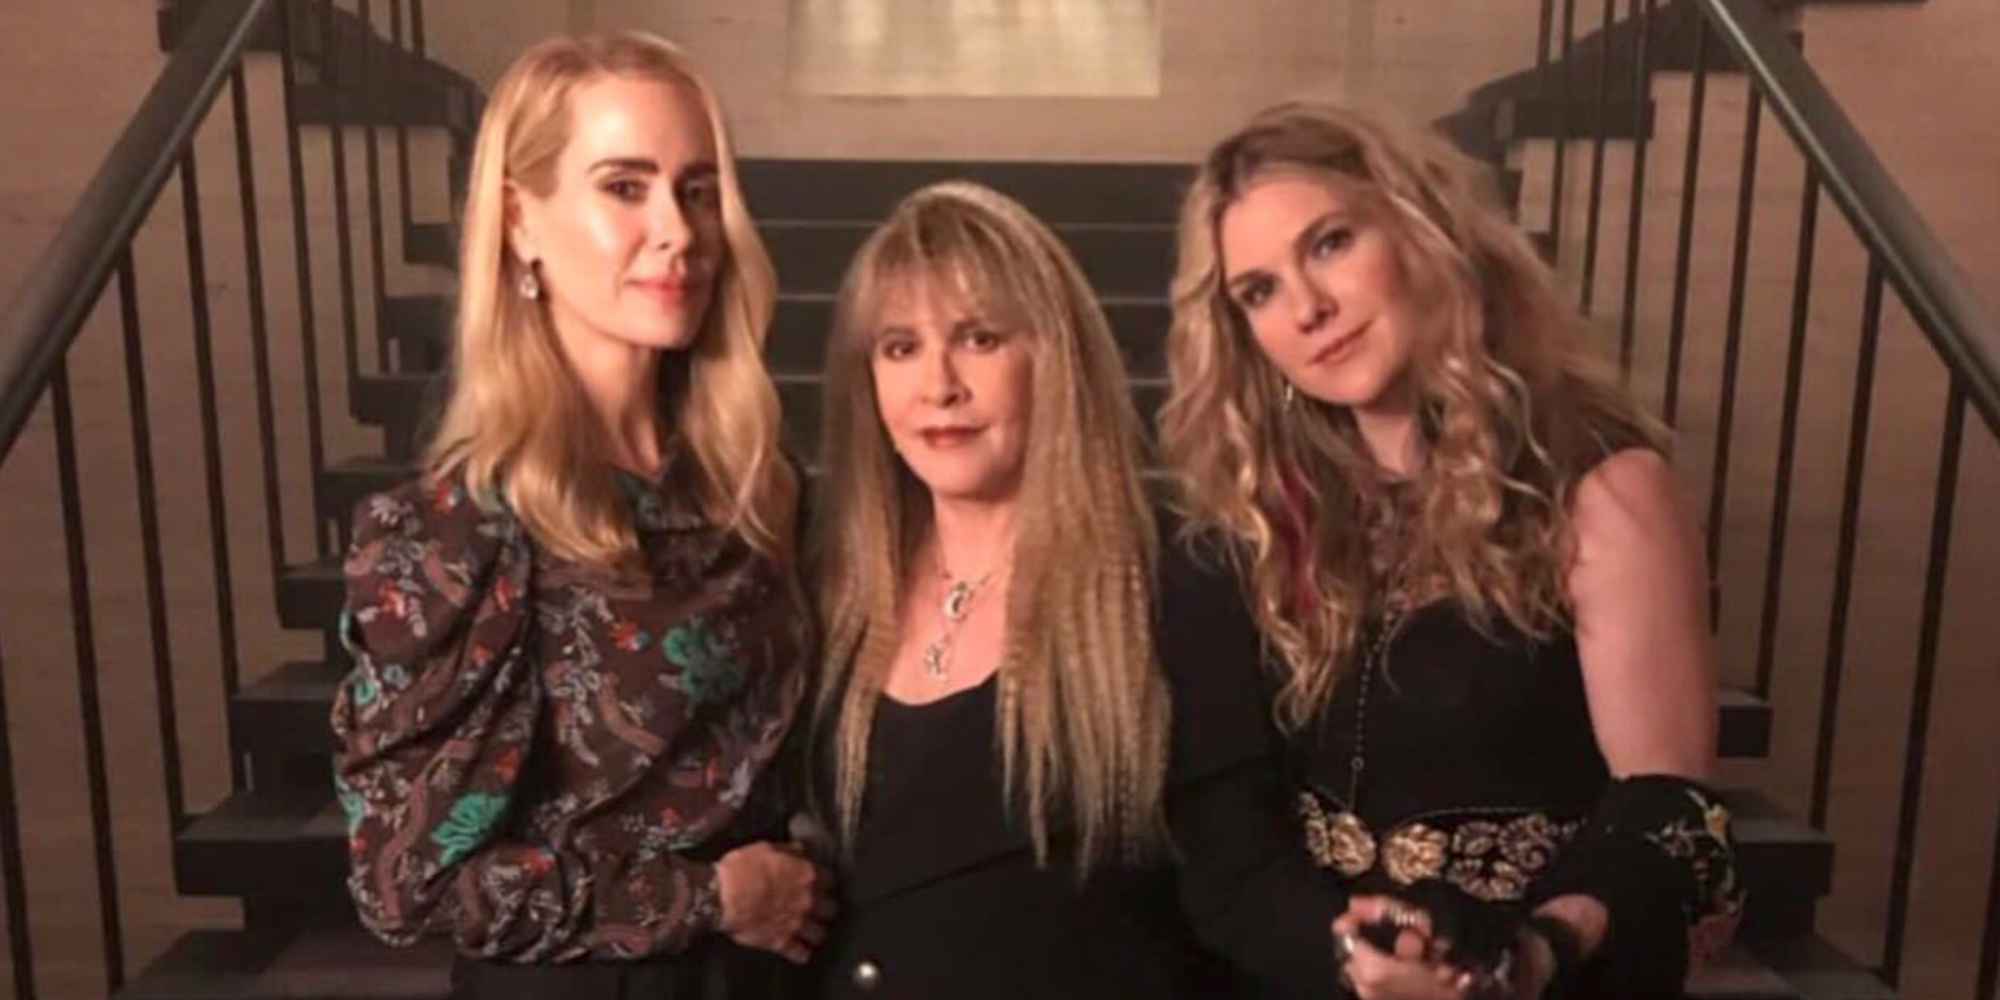 The Cast of 'American Horror Story: Coven' Has Reunited On Set and We're Spellbound